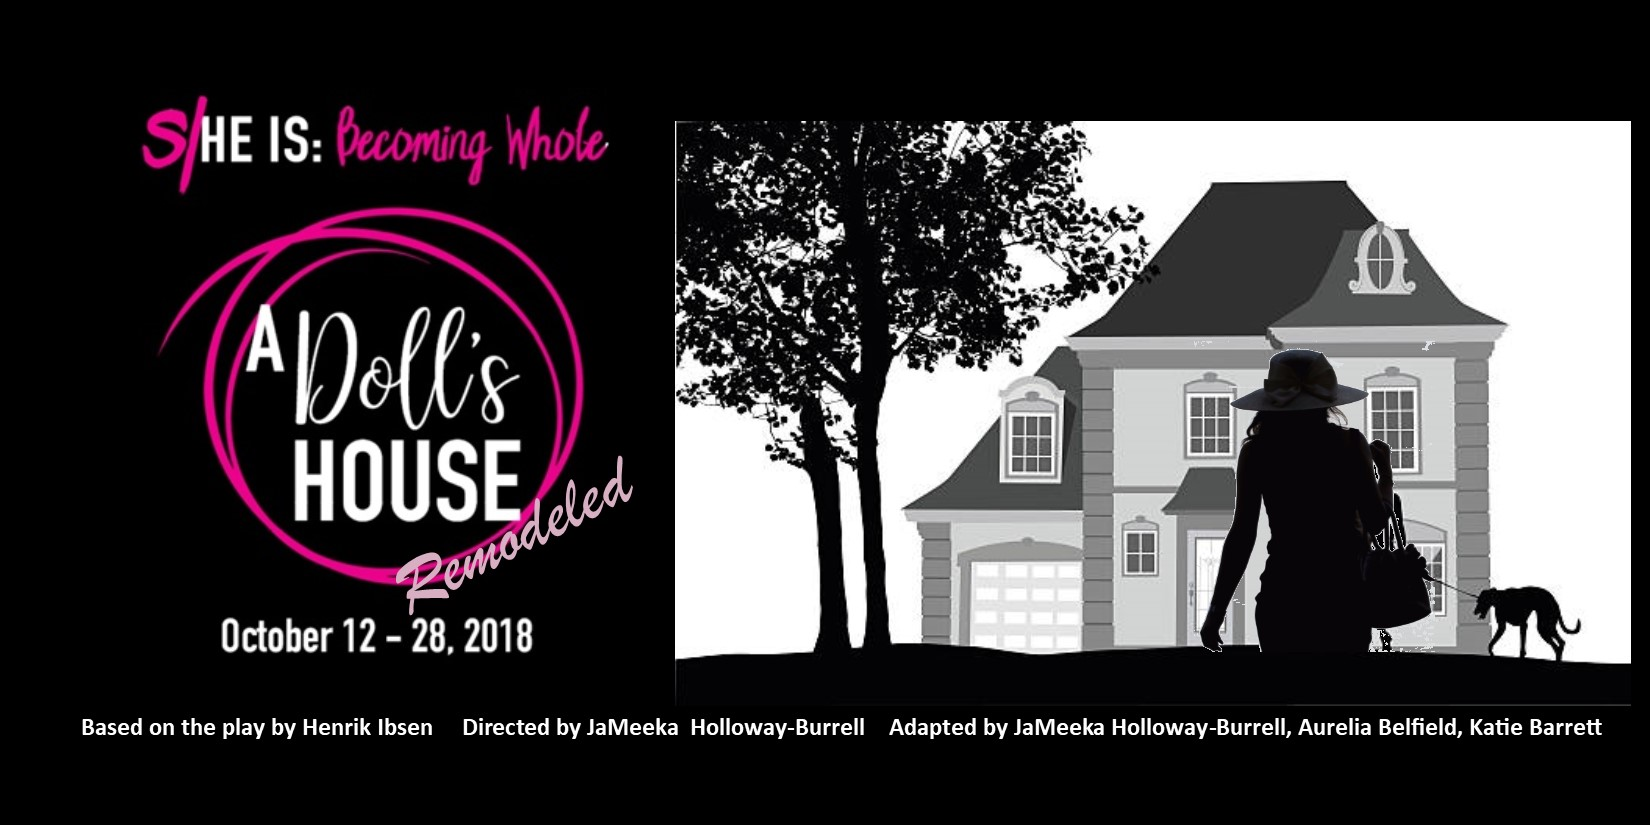 dolls house logo remodeled.jpg